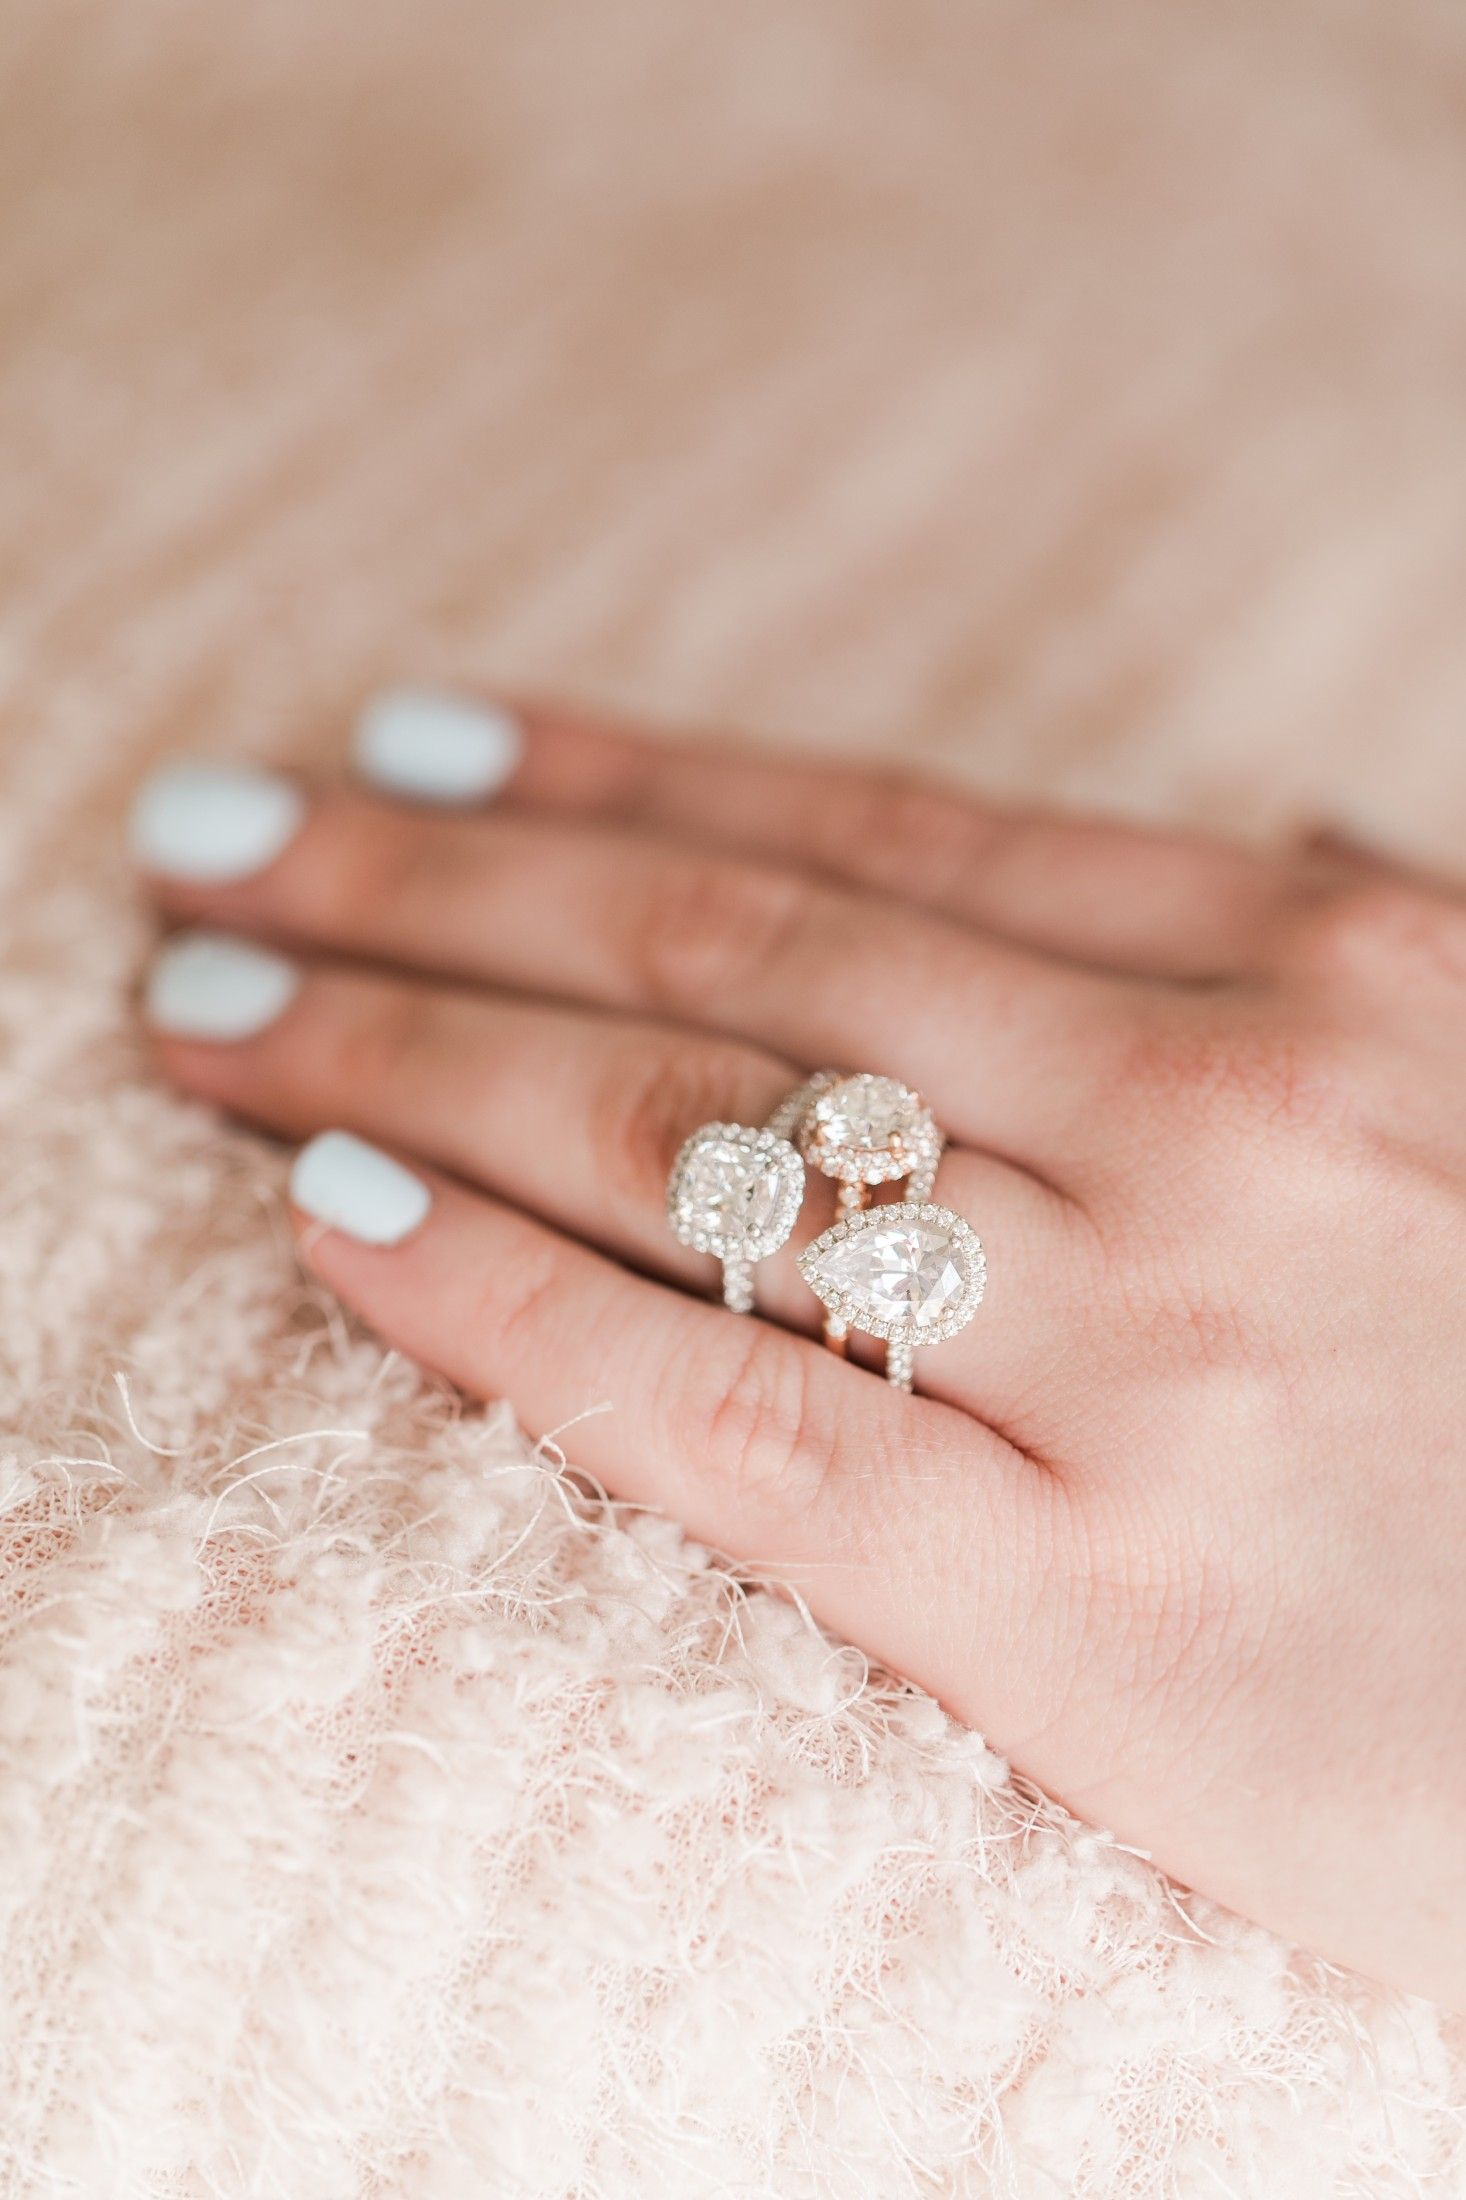 which ring shape is your favorite build your own engagement ring at james allen - Build Your Own Wedding Ring